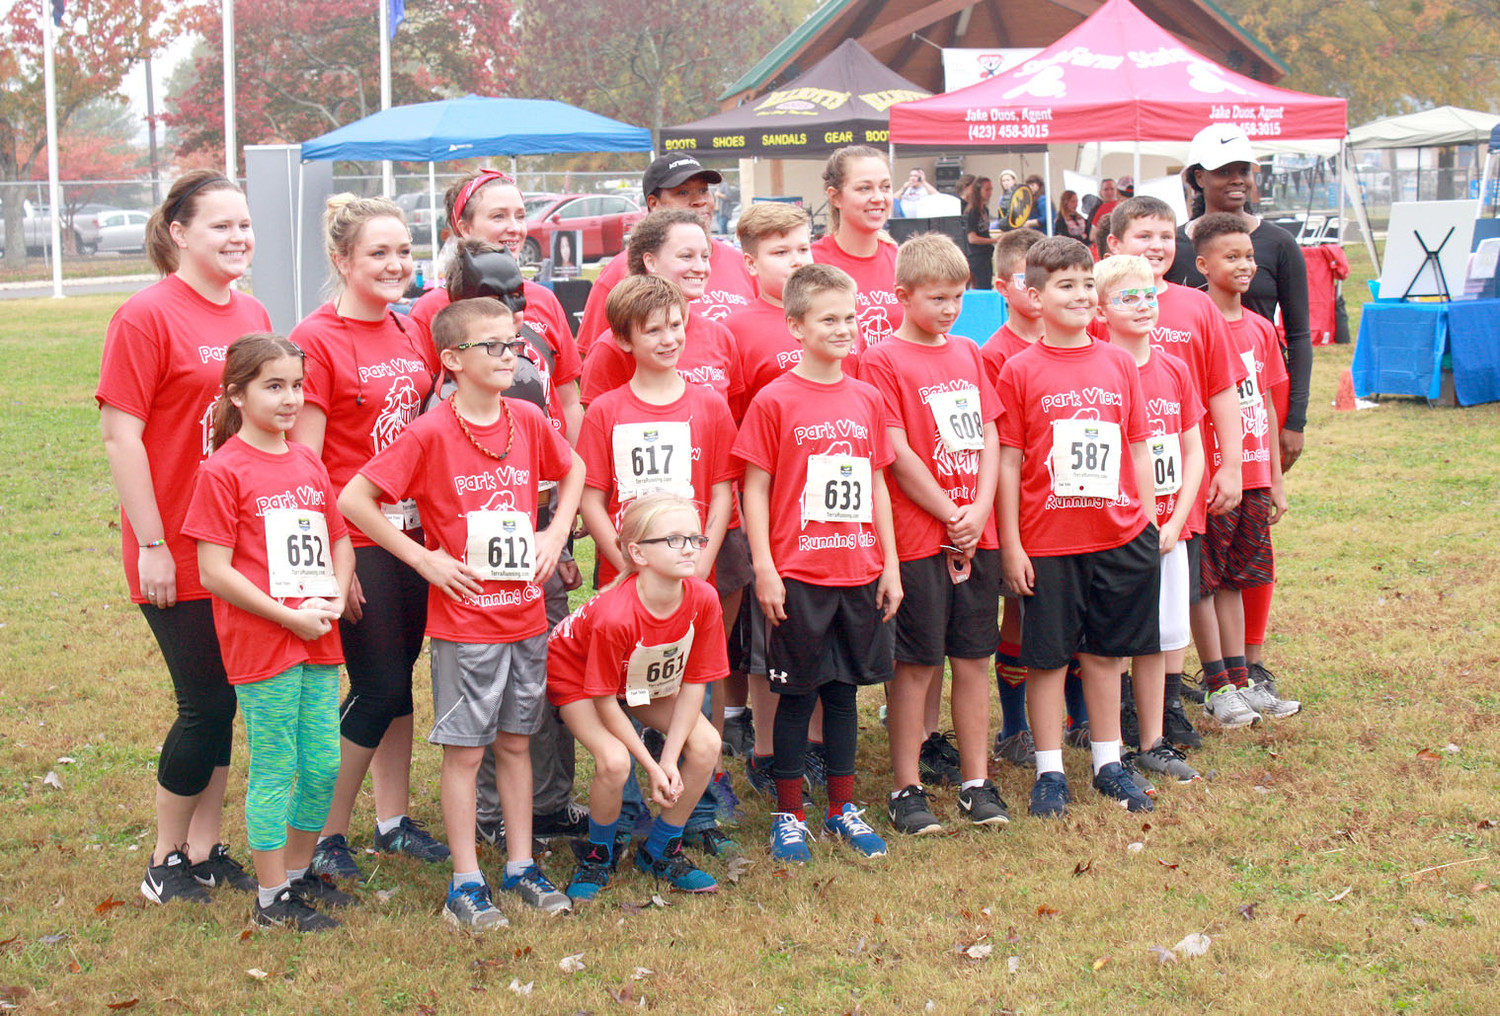 PARK VIEW ELEMENTARY had a special team of students participate in the CASA SUperhero run.